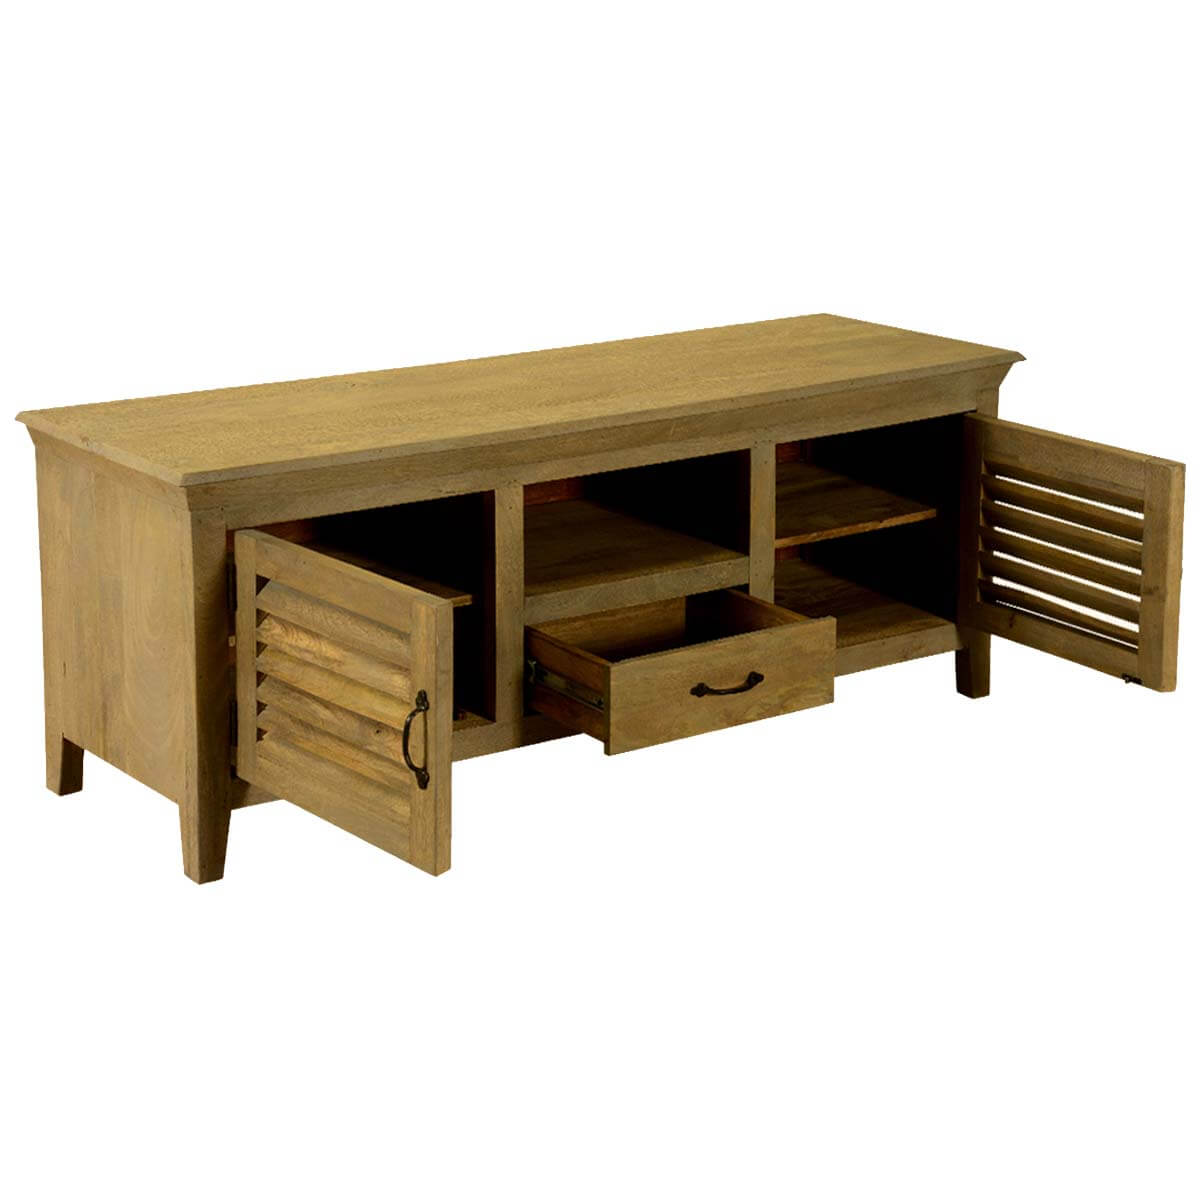 Modern farmhouse mango wood 5p cabinet coffee table for Modern farmhouse coffee table